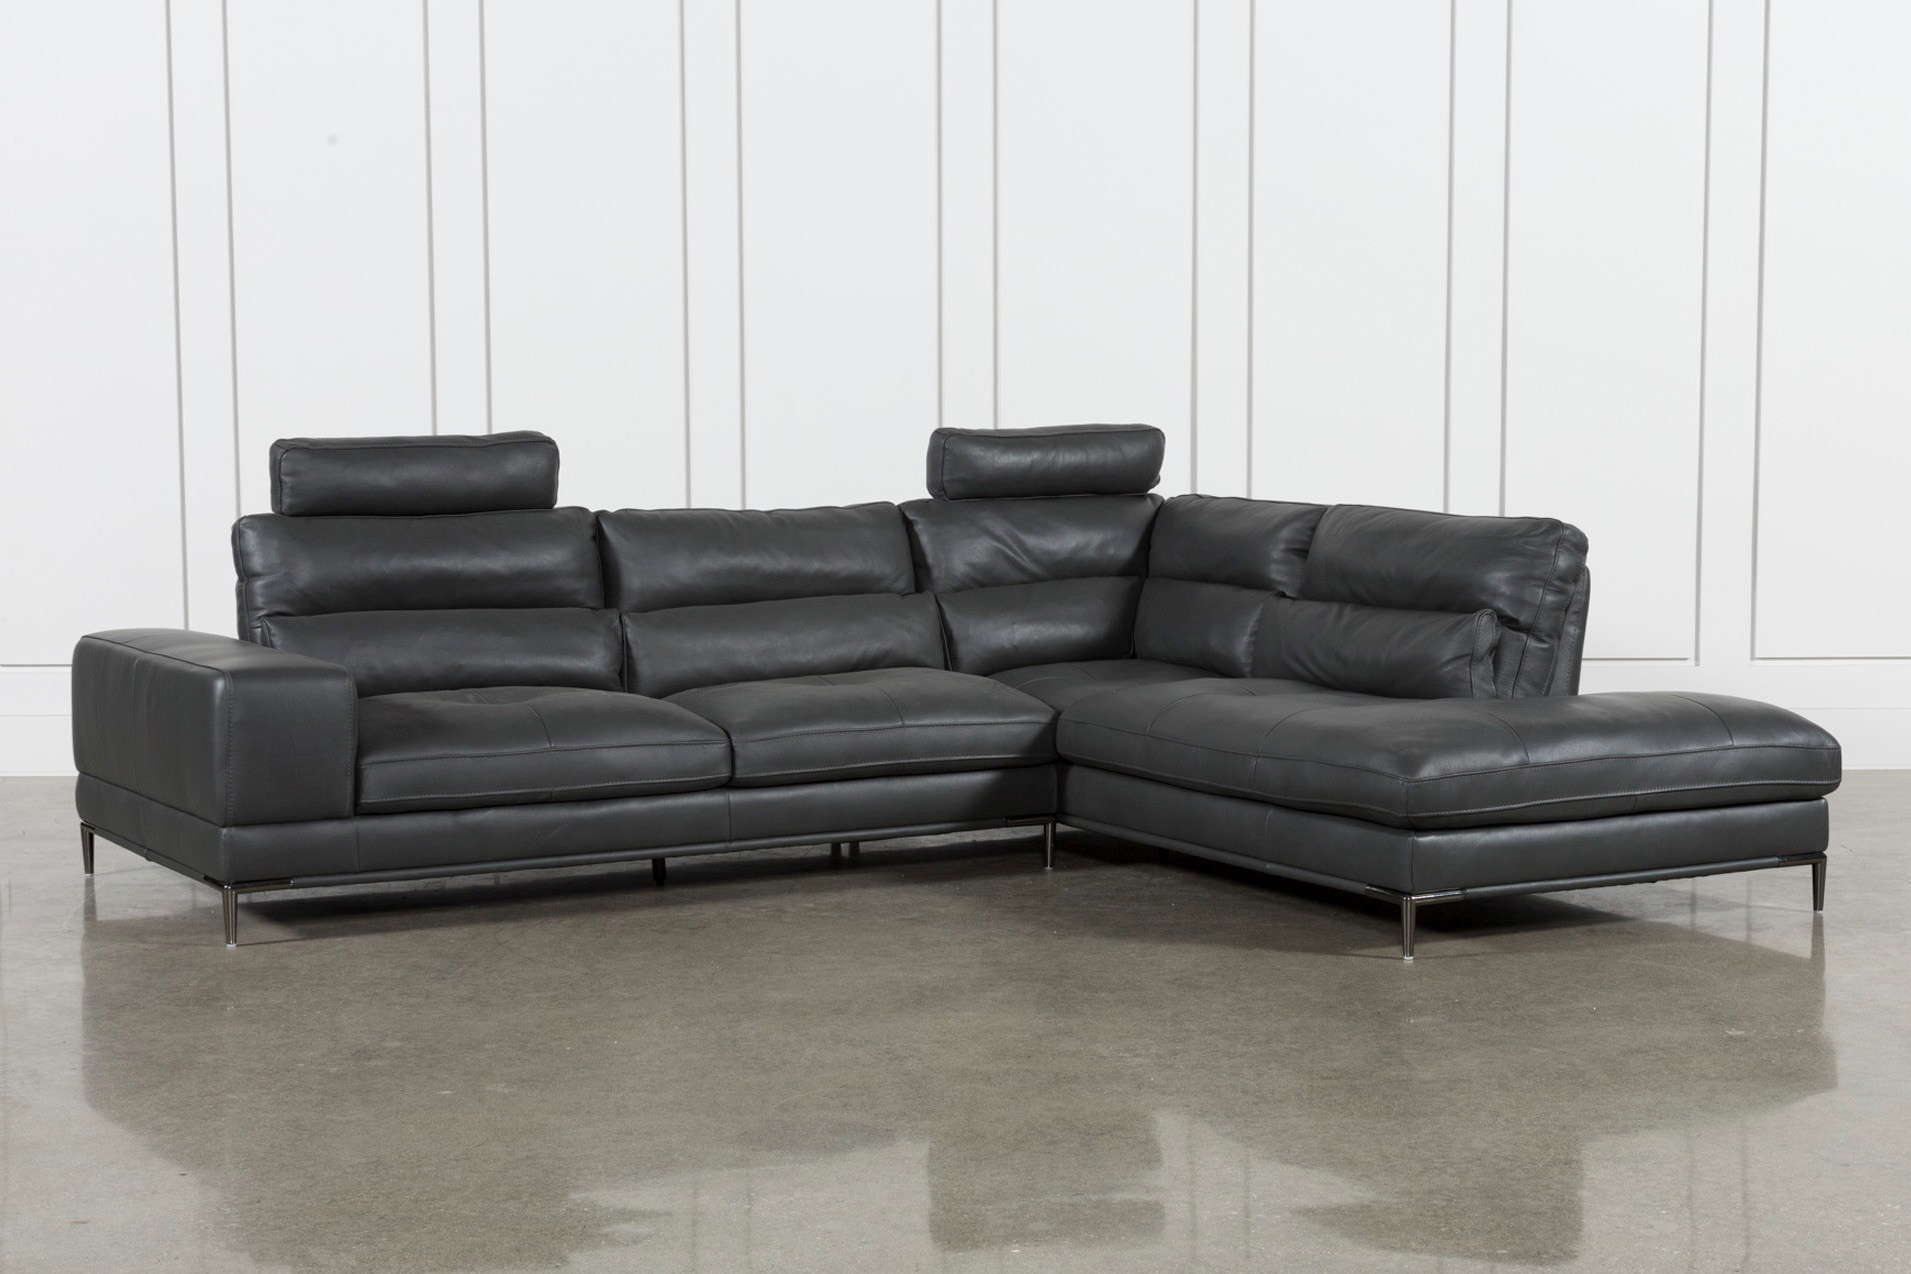 Tenny Dark Grey 2 Piece Raf Chaise Sectional W/2 Headrest | Living Spaces